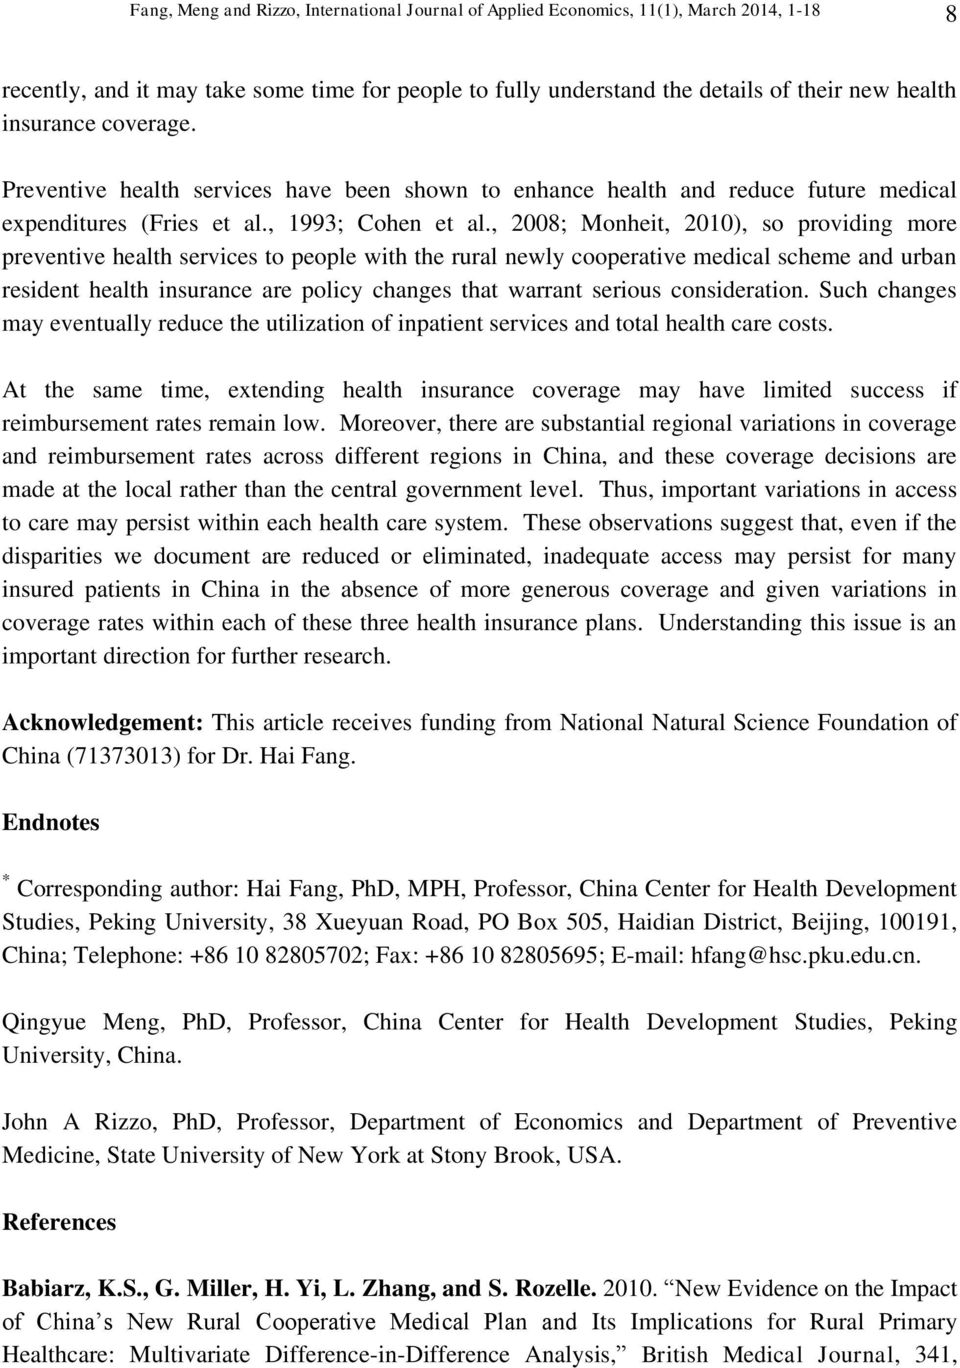 , 2008; Monheit, 2010), so providing more preventive health services to people with the rural newly cooperative medical scheme and urban resident health insurance are policy changes that warrant